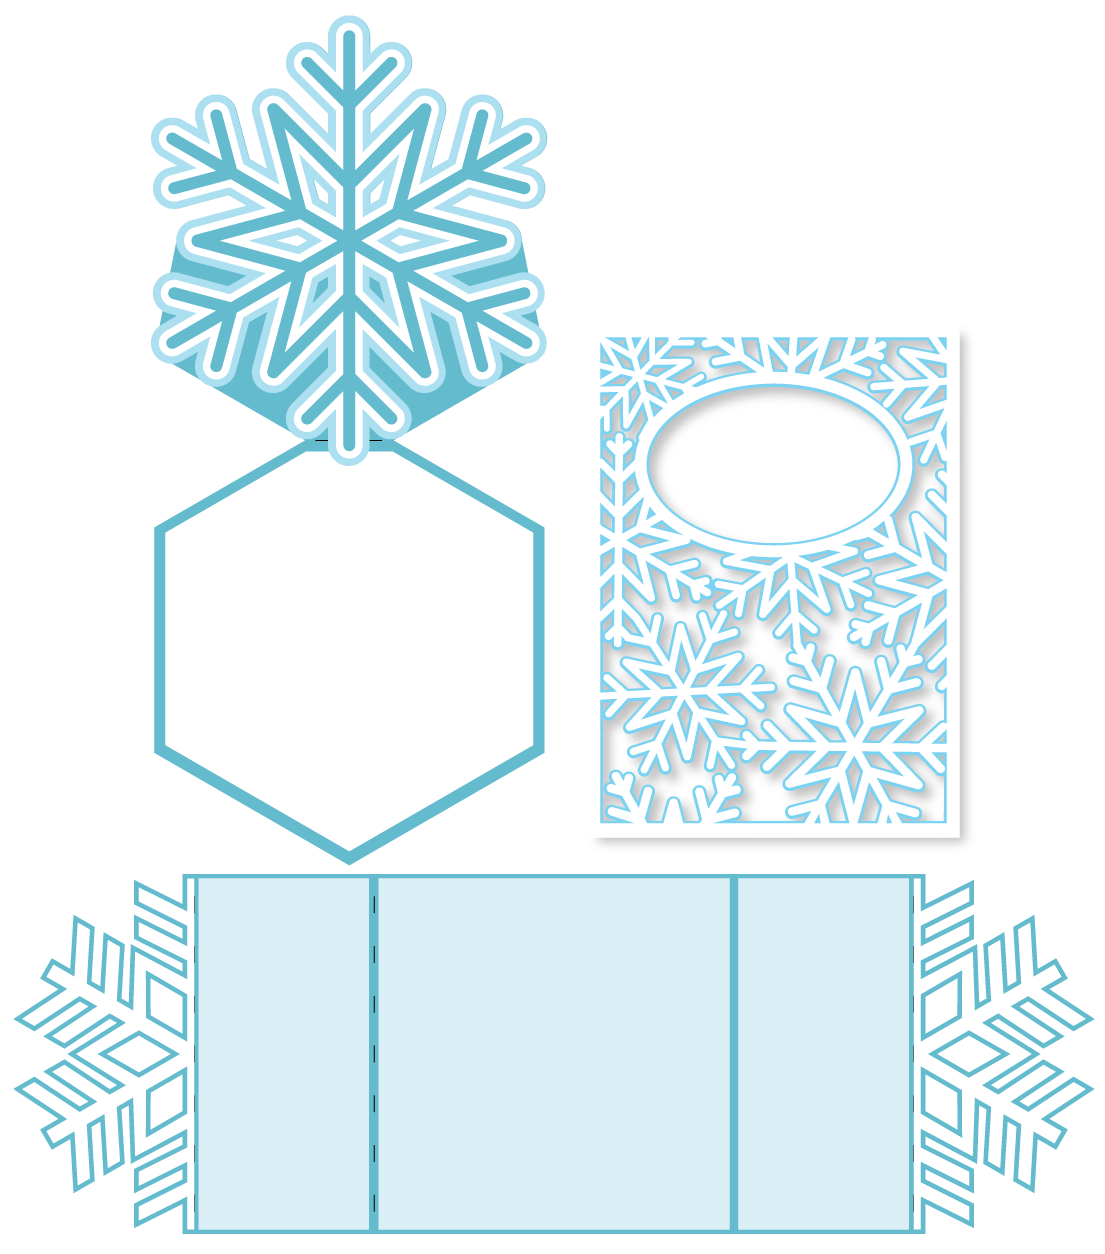 Download snowflake-cards | Snowflake cards, Cricut christmas cards